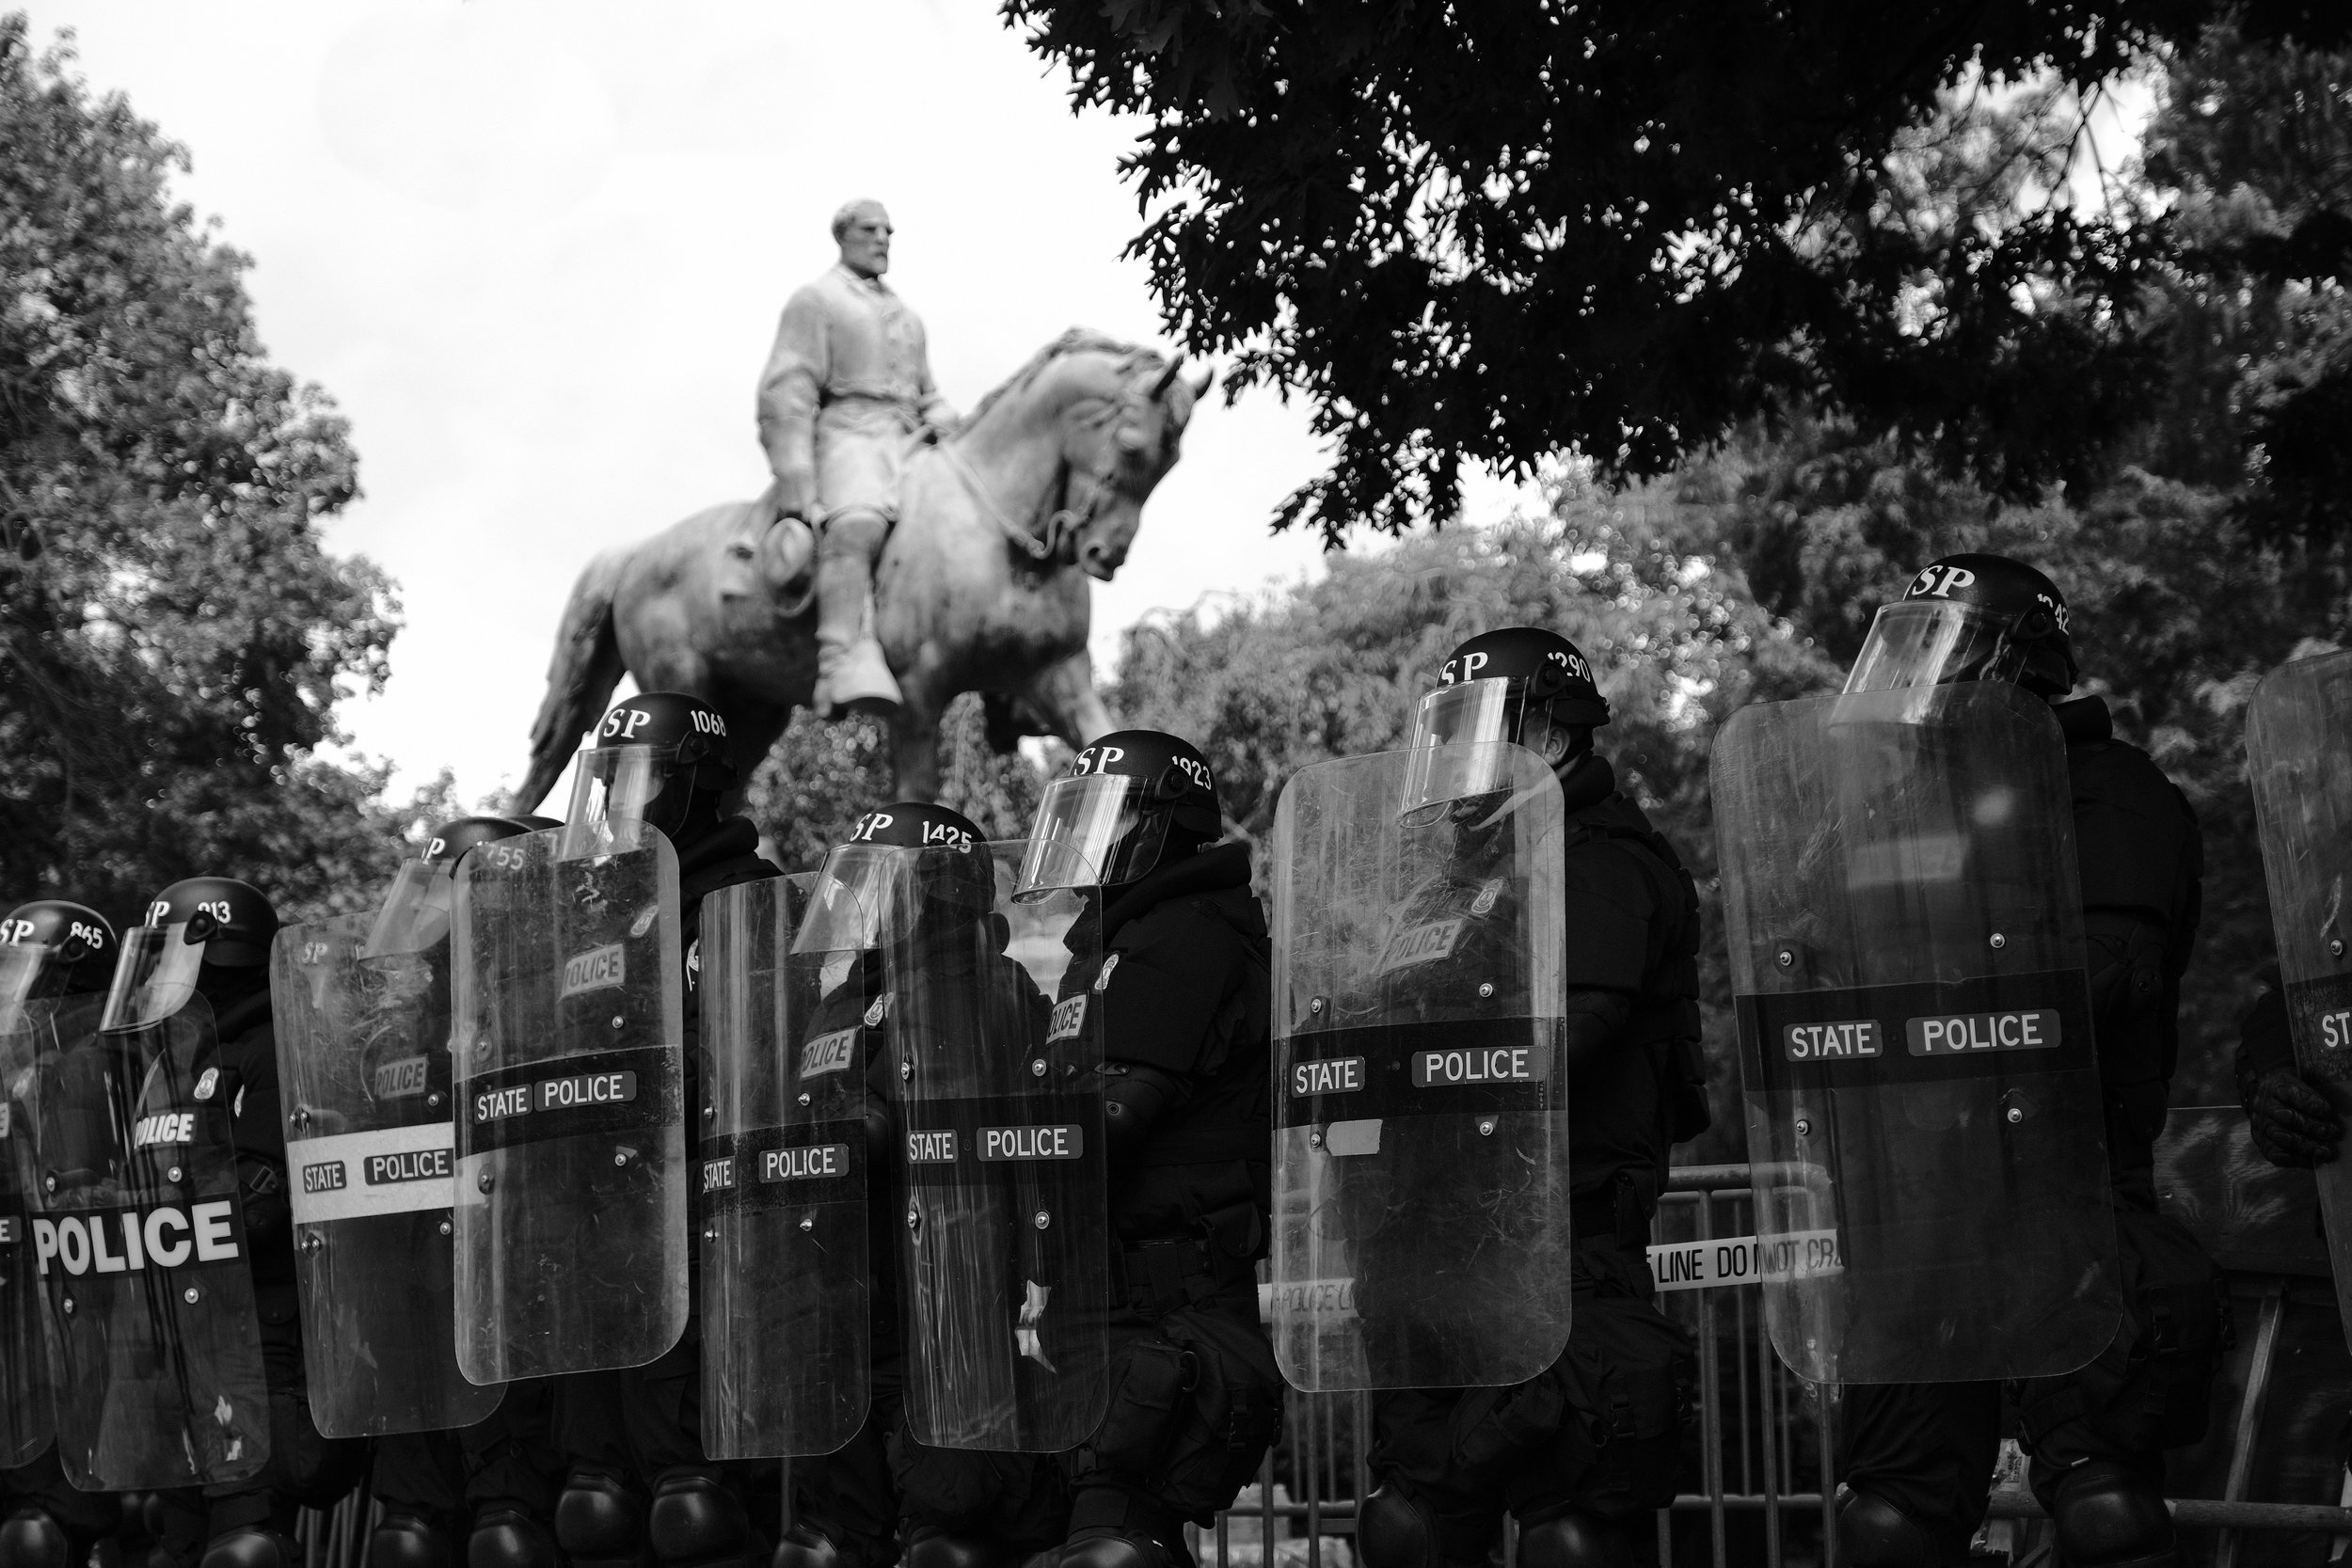 At approximately 11:30 AM, before the Unite the Right rally was even scheduled to begin, police declared everyone present an unlawful assembly and begin to push both the white supremacists and protesters away from Emancipation Park. Conflicting and contradictory orders were issued as police attempted to clear the street of people, and even many of the officers didn't appear to know where they should be or where they should go. Despite all of the melees and the use of gas and mace, there were no attempts by police to intervene prior to this.